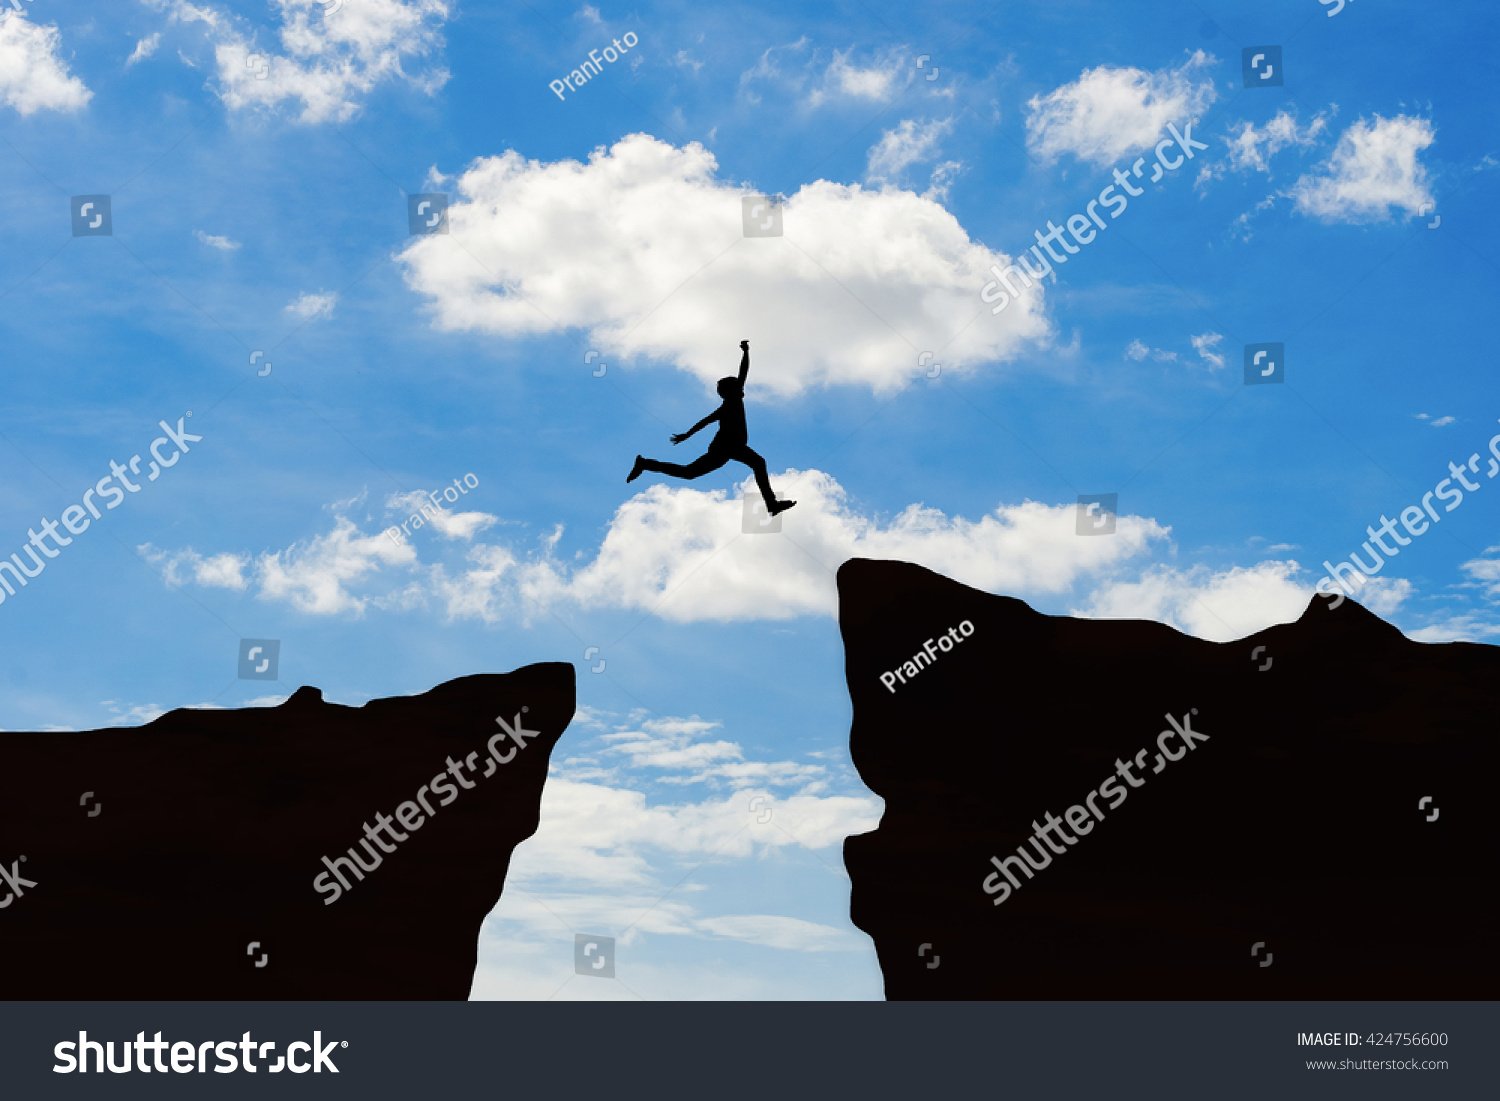 Man Jump Through The Gap Between Hilln Jumping Over Cliff On